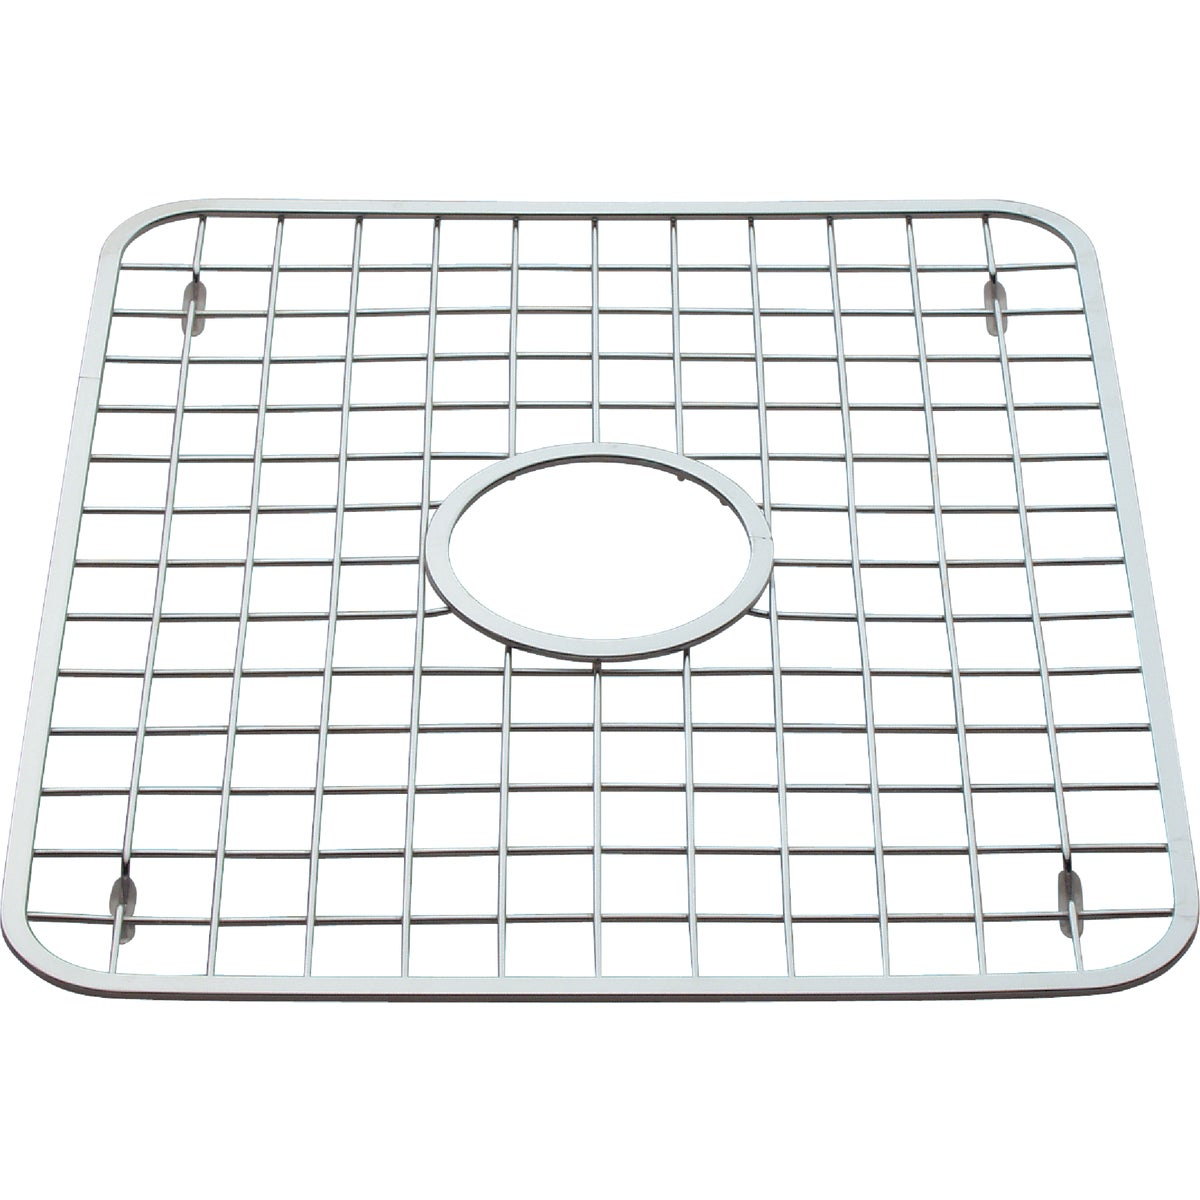 SINK GRID W/HOLE - 72102 by Interdesign Inc